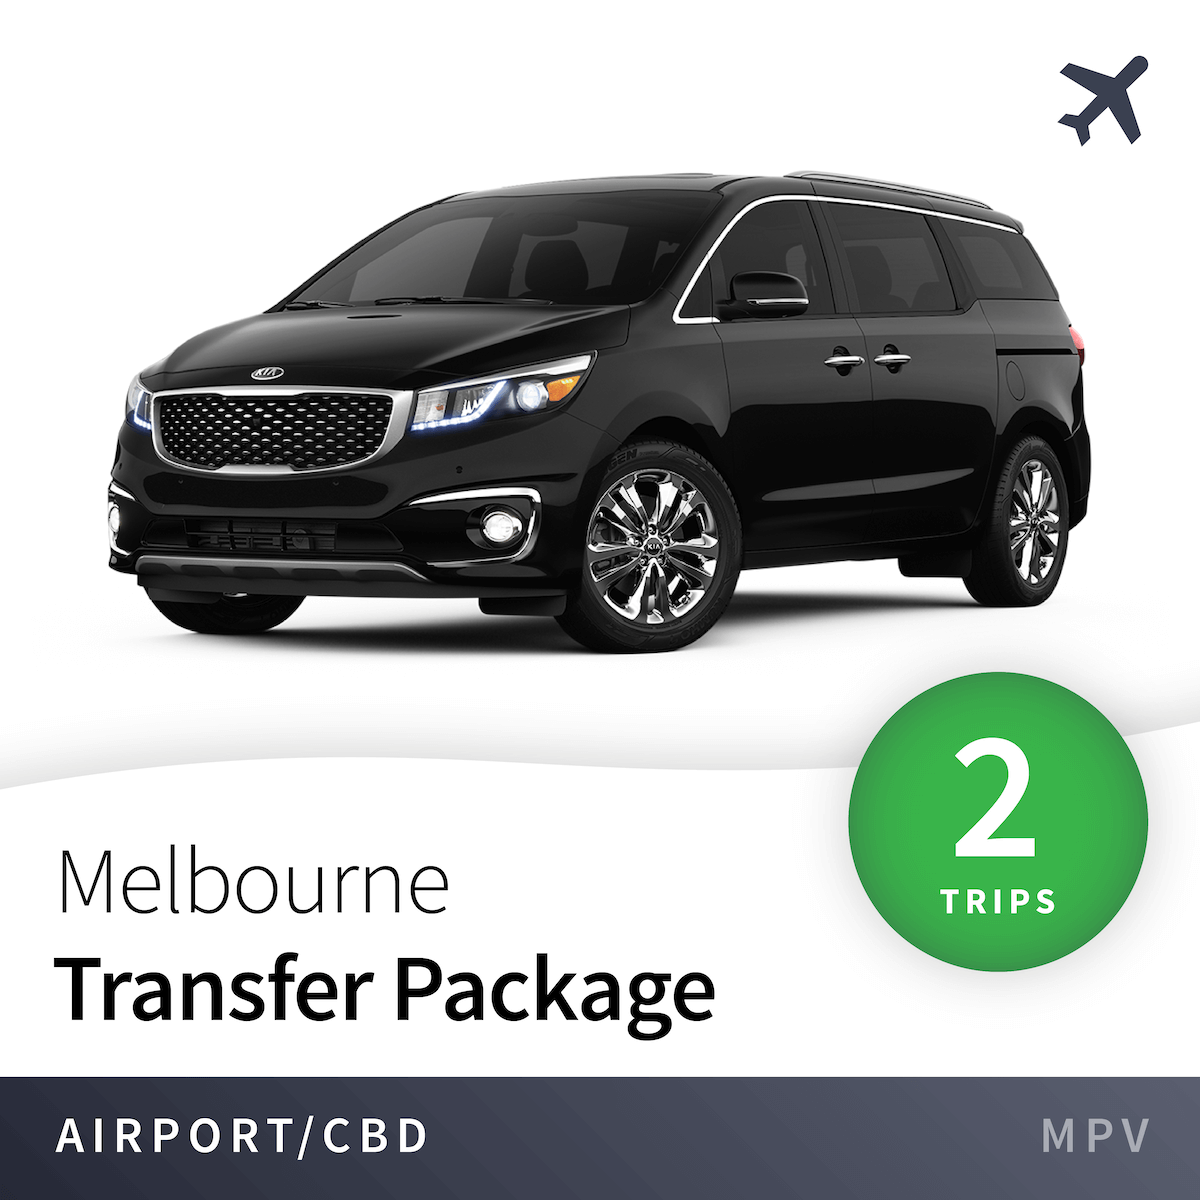 Melbourne Airport Transfer Package - MPV (2 Trips) 7